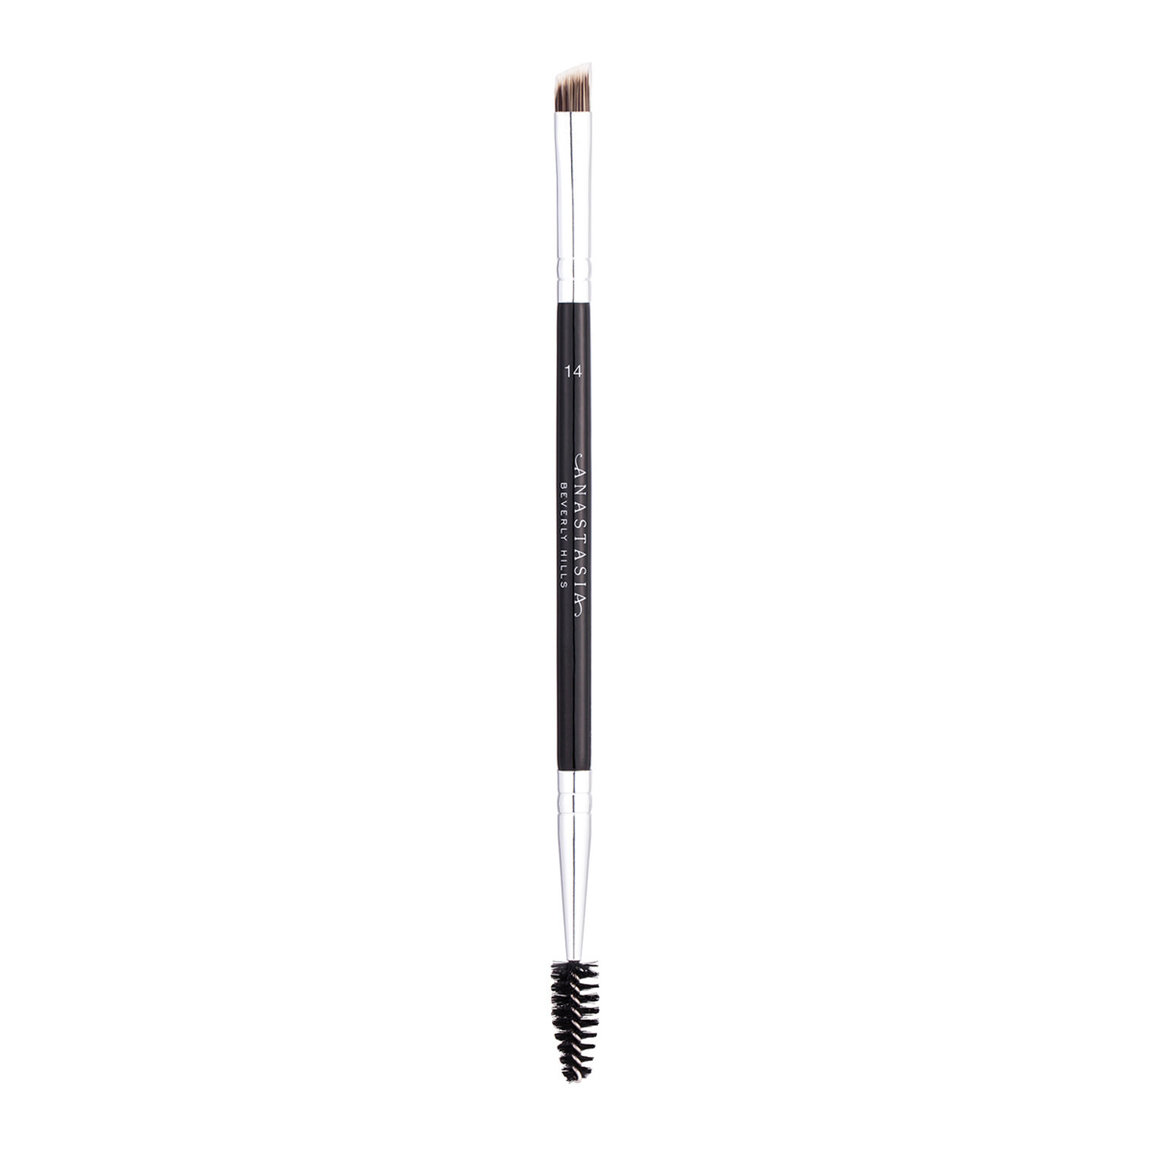 Anastasia Beverly Hills Brush 14 Dual-Ended Firm Detail Brush product swatch.